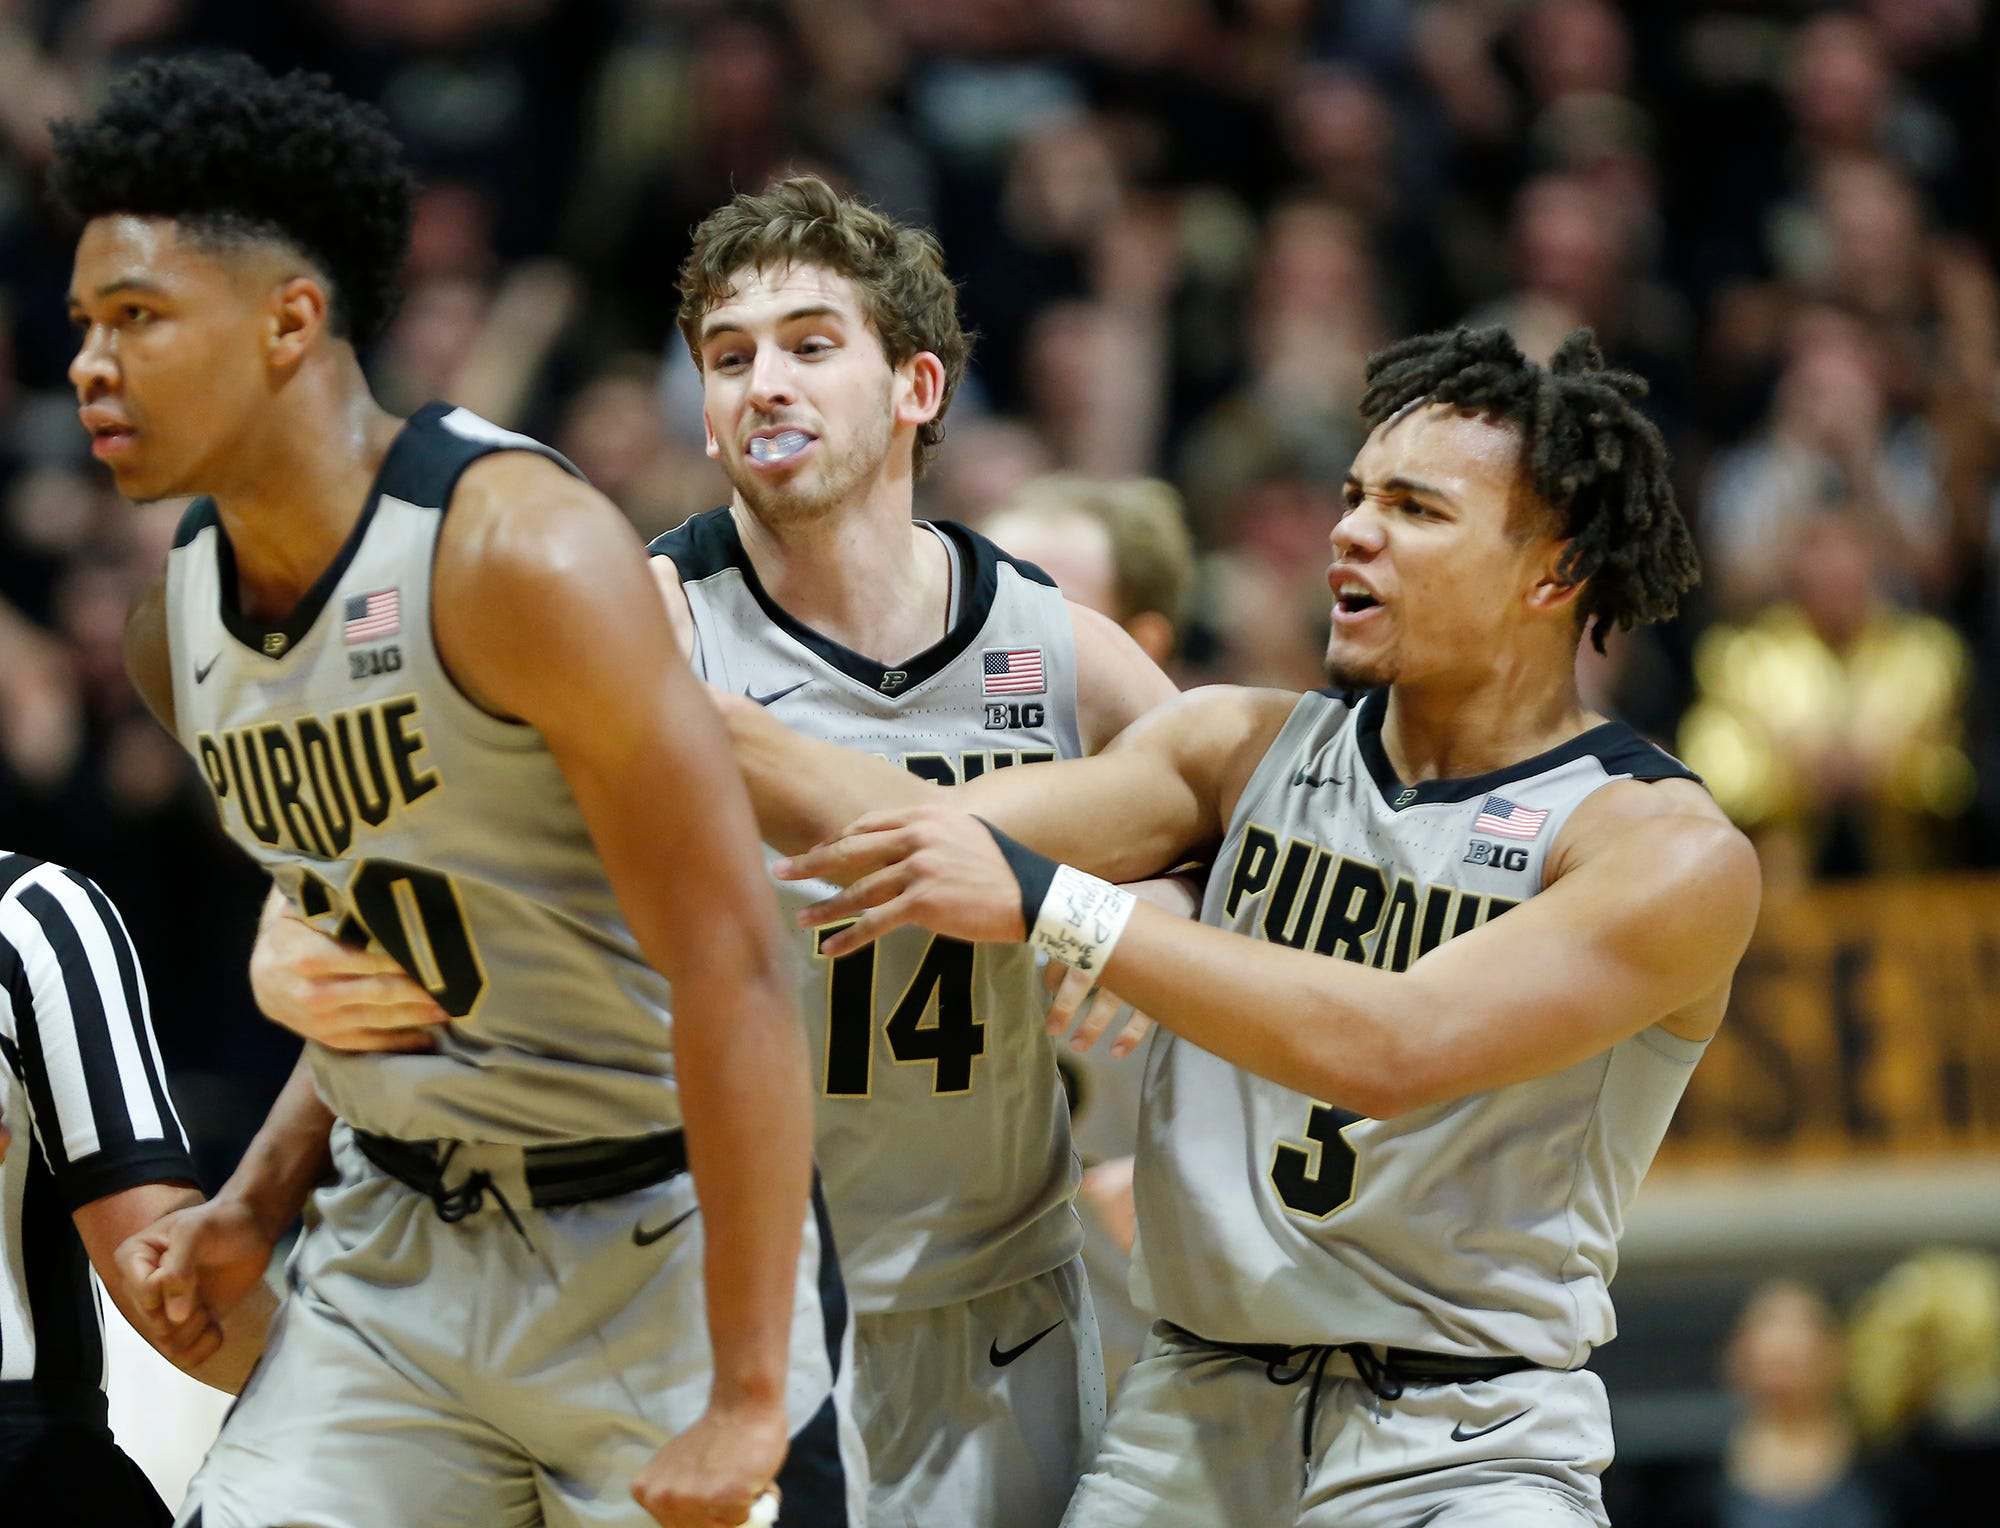 Carsen Edwards, from right, and Ryan Cline of Purdue clown with teammate Nojel Eastern after Eastern's basket put the Boilermakers up 69-52 over Ball State with 11:23 remaining Saturday, November 10, 2018, at Mackey Arena. Purdue defeated Ball State 84-75.